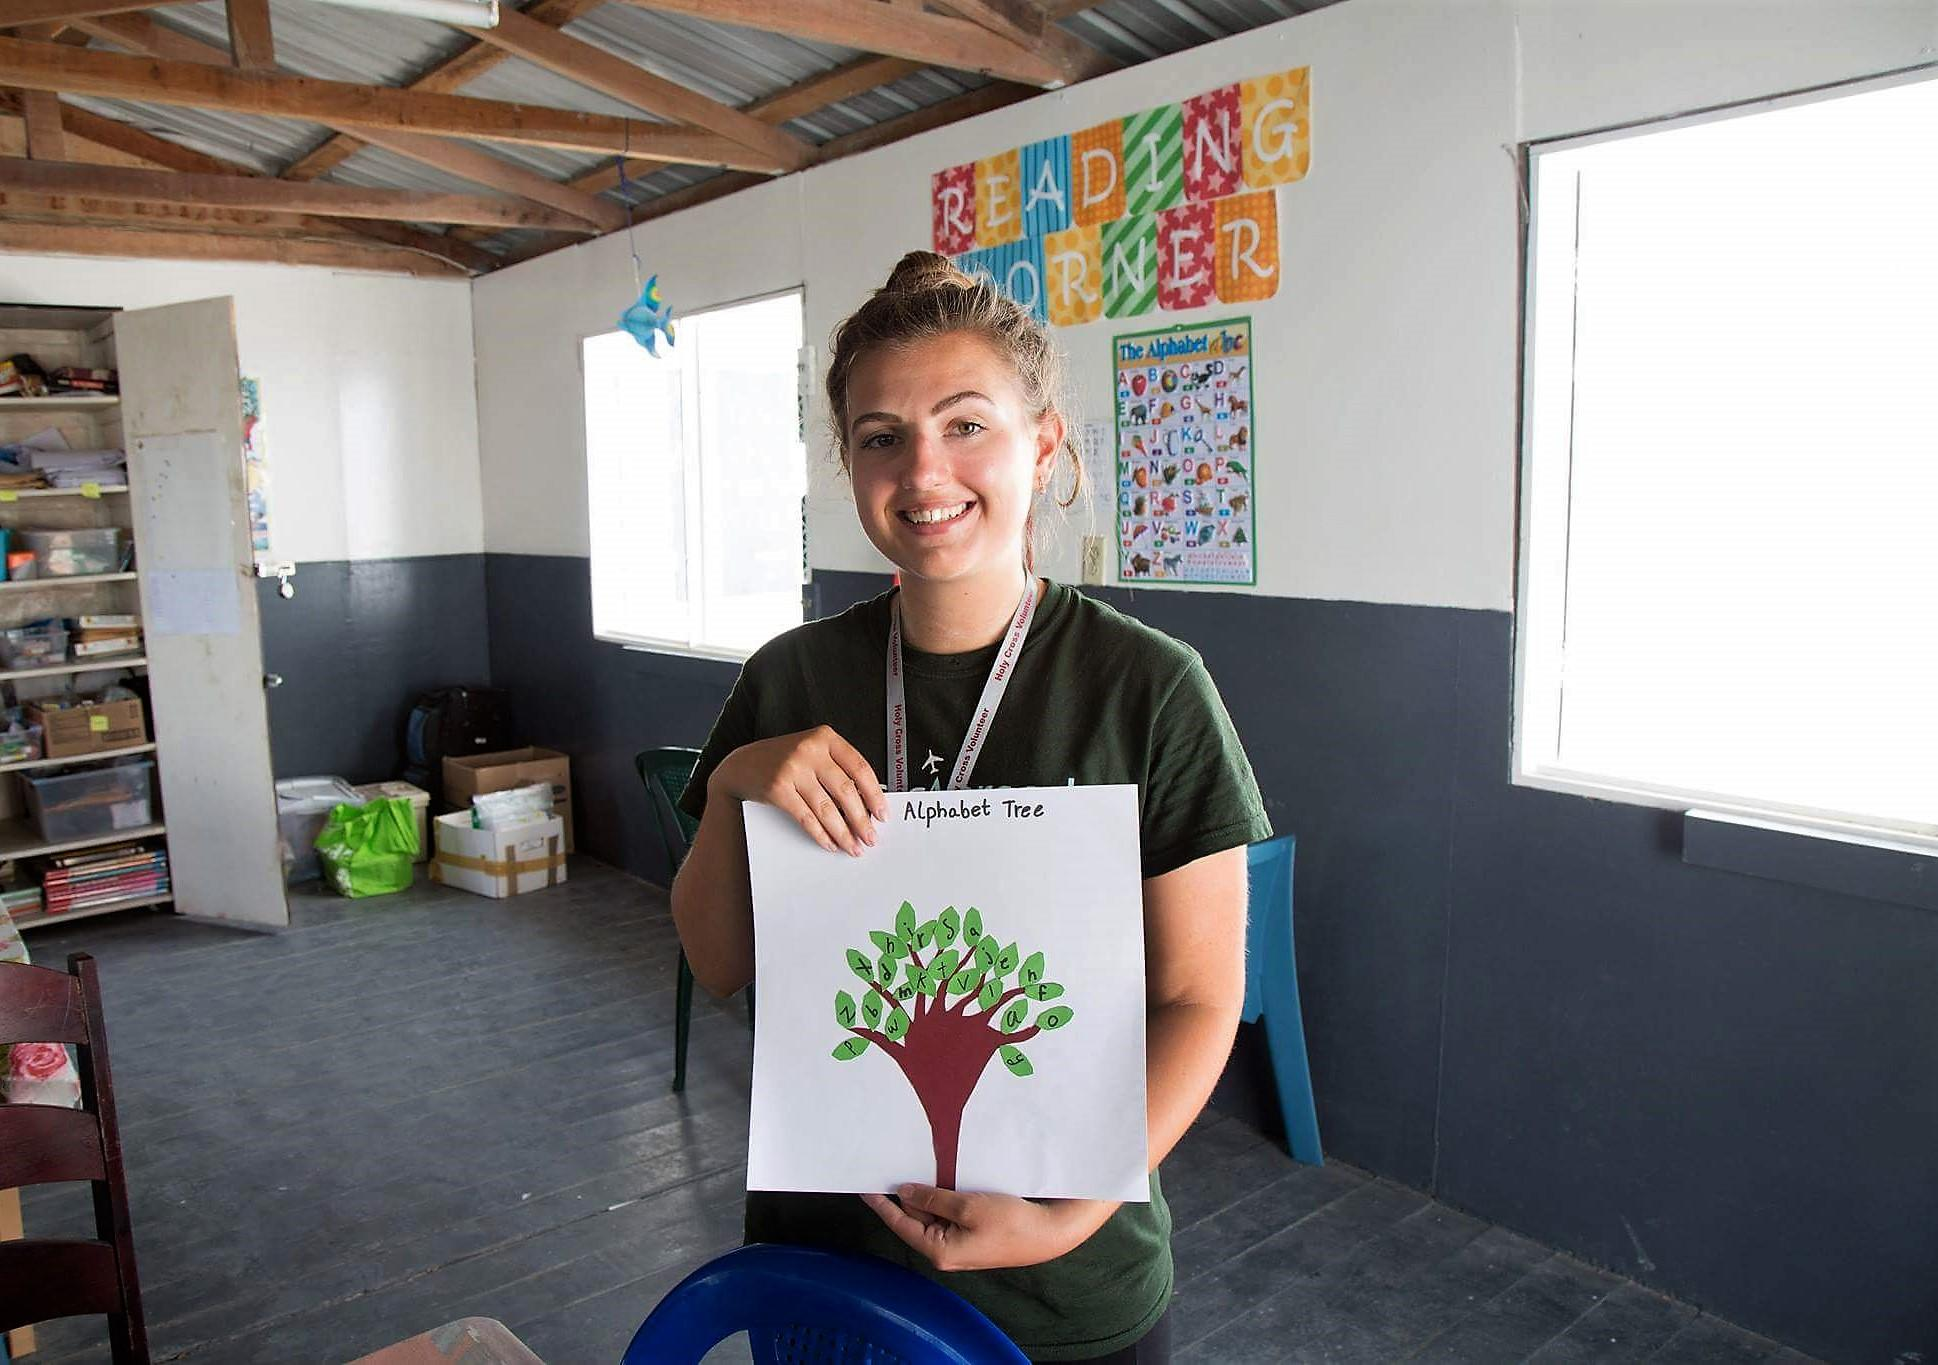 Projects Abroad volunteer holds up an alphabet tree created by one of her students at her Teaching placement in Belize